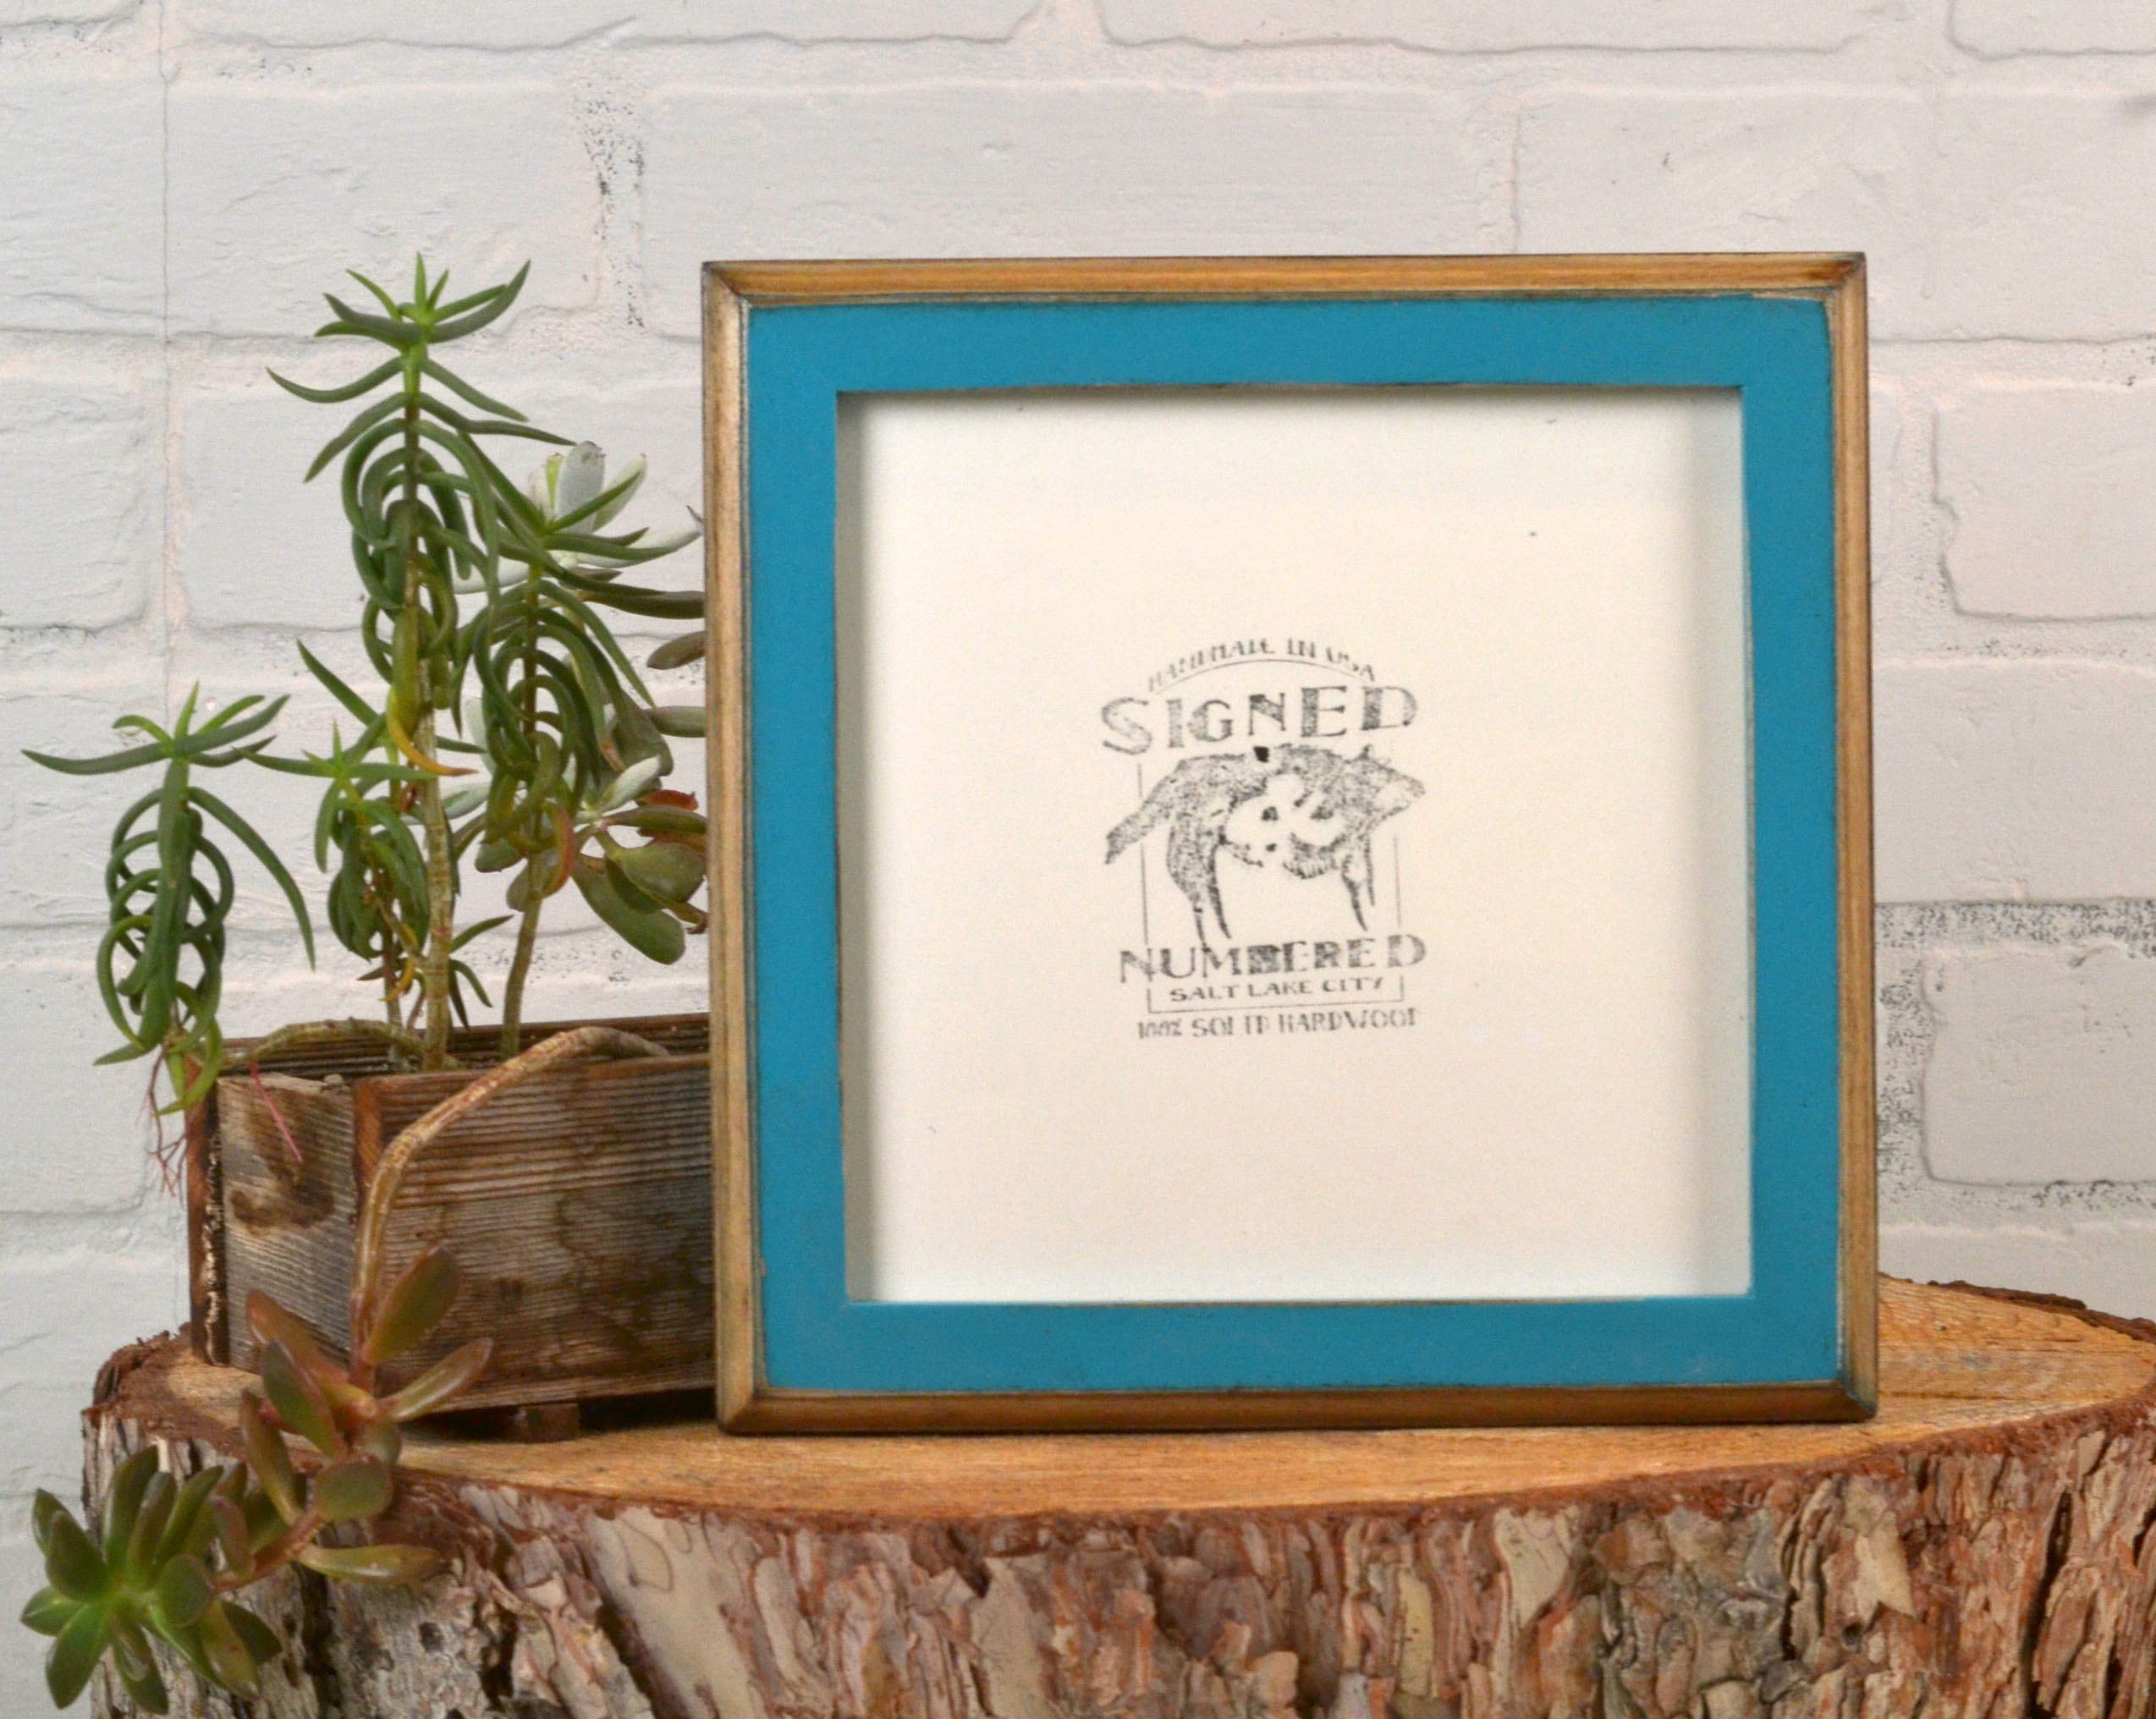 7x7 Square Picture Frame in 1x1 2-Tone Style with Vintage Turquoise ...